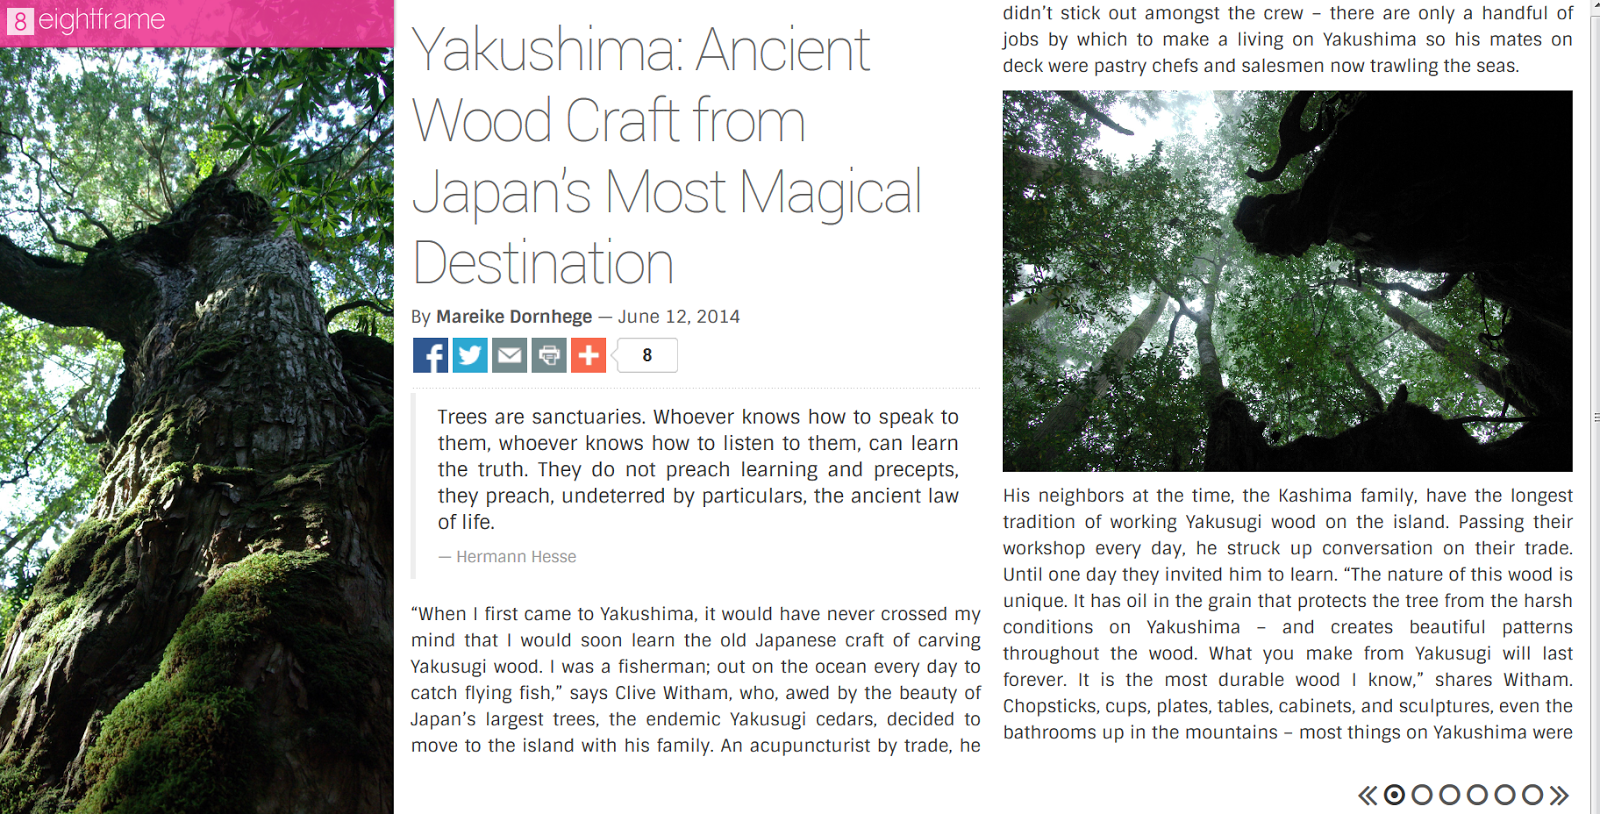 http://eightframe.jp/issue/1/articles/yakushima-ancient-wood-craft-from-japans-most-magical-destination/#.VKaXQnurGPK